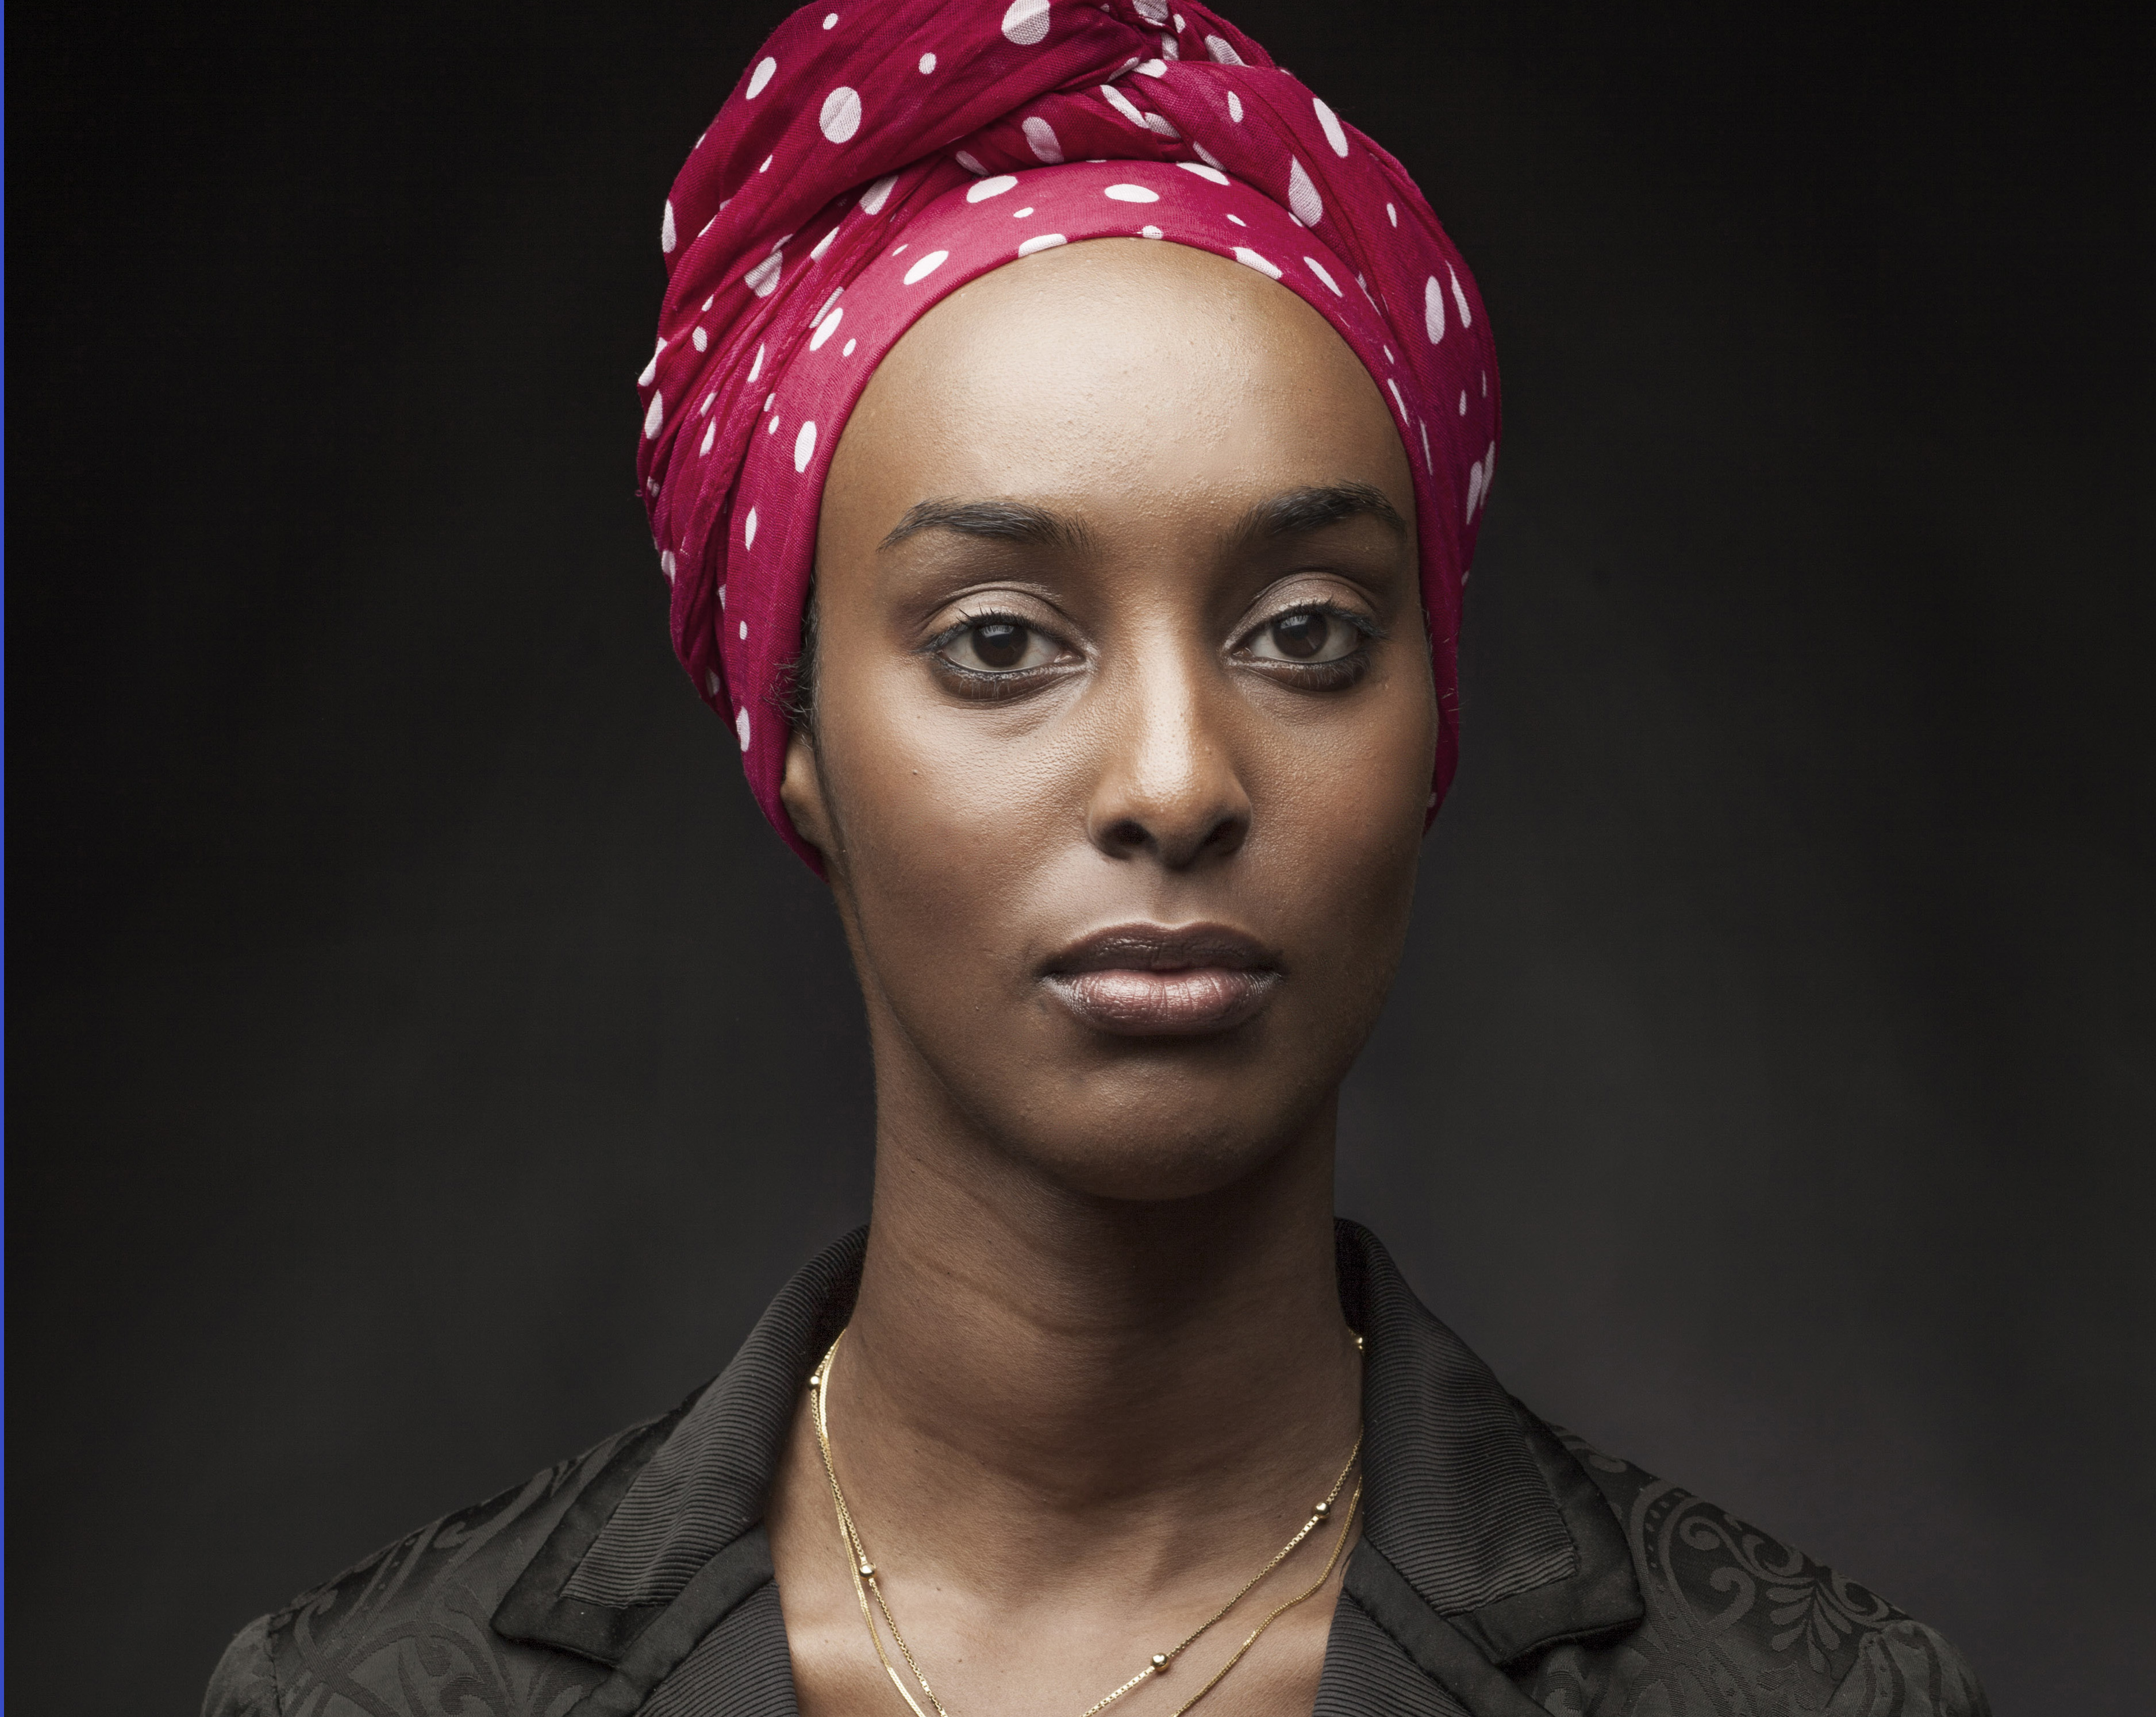 Ladan Osman On Writing Poetry That Stays Close To Home